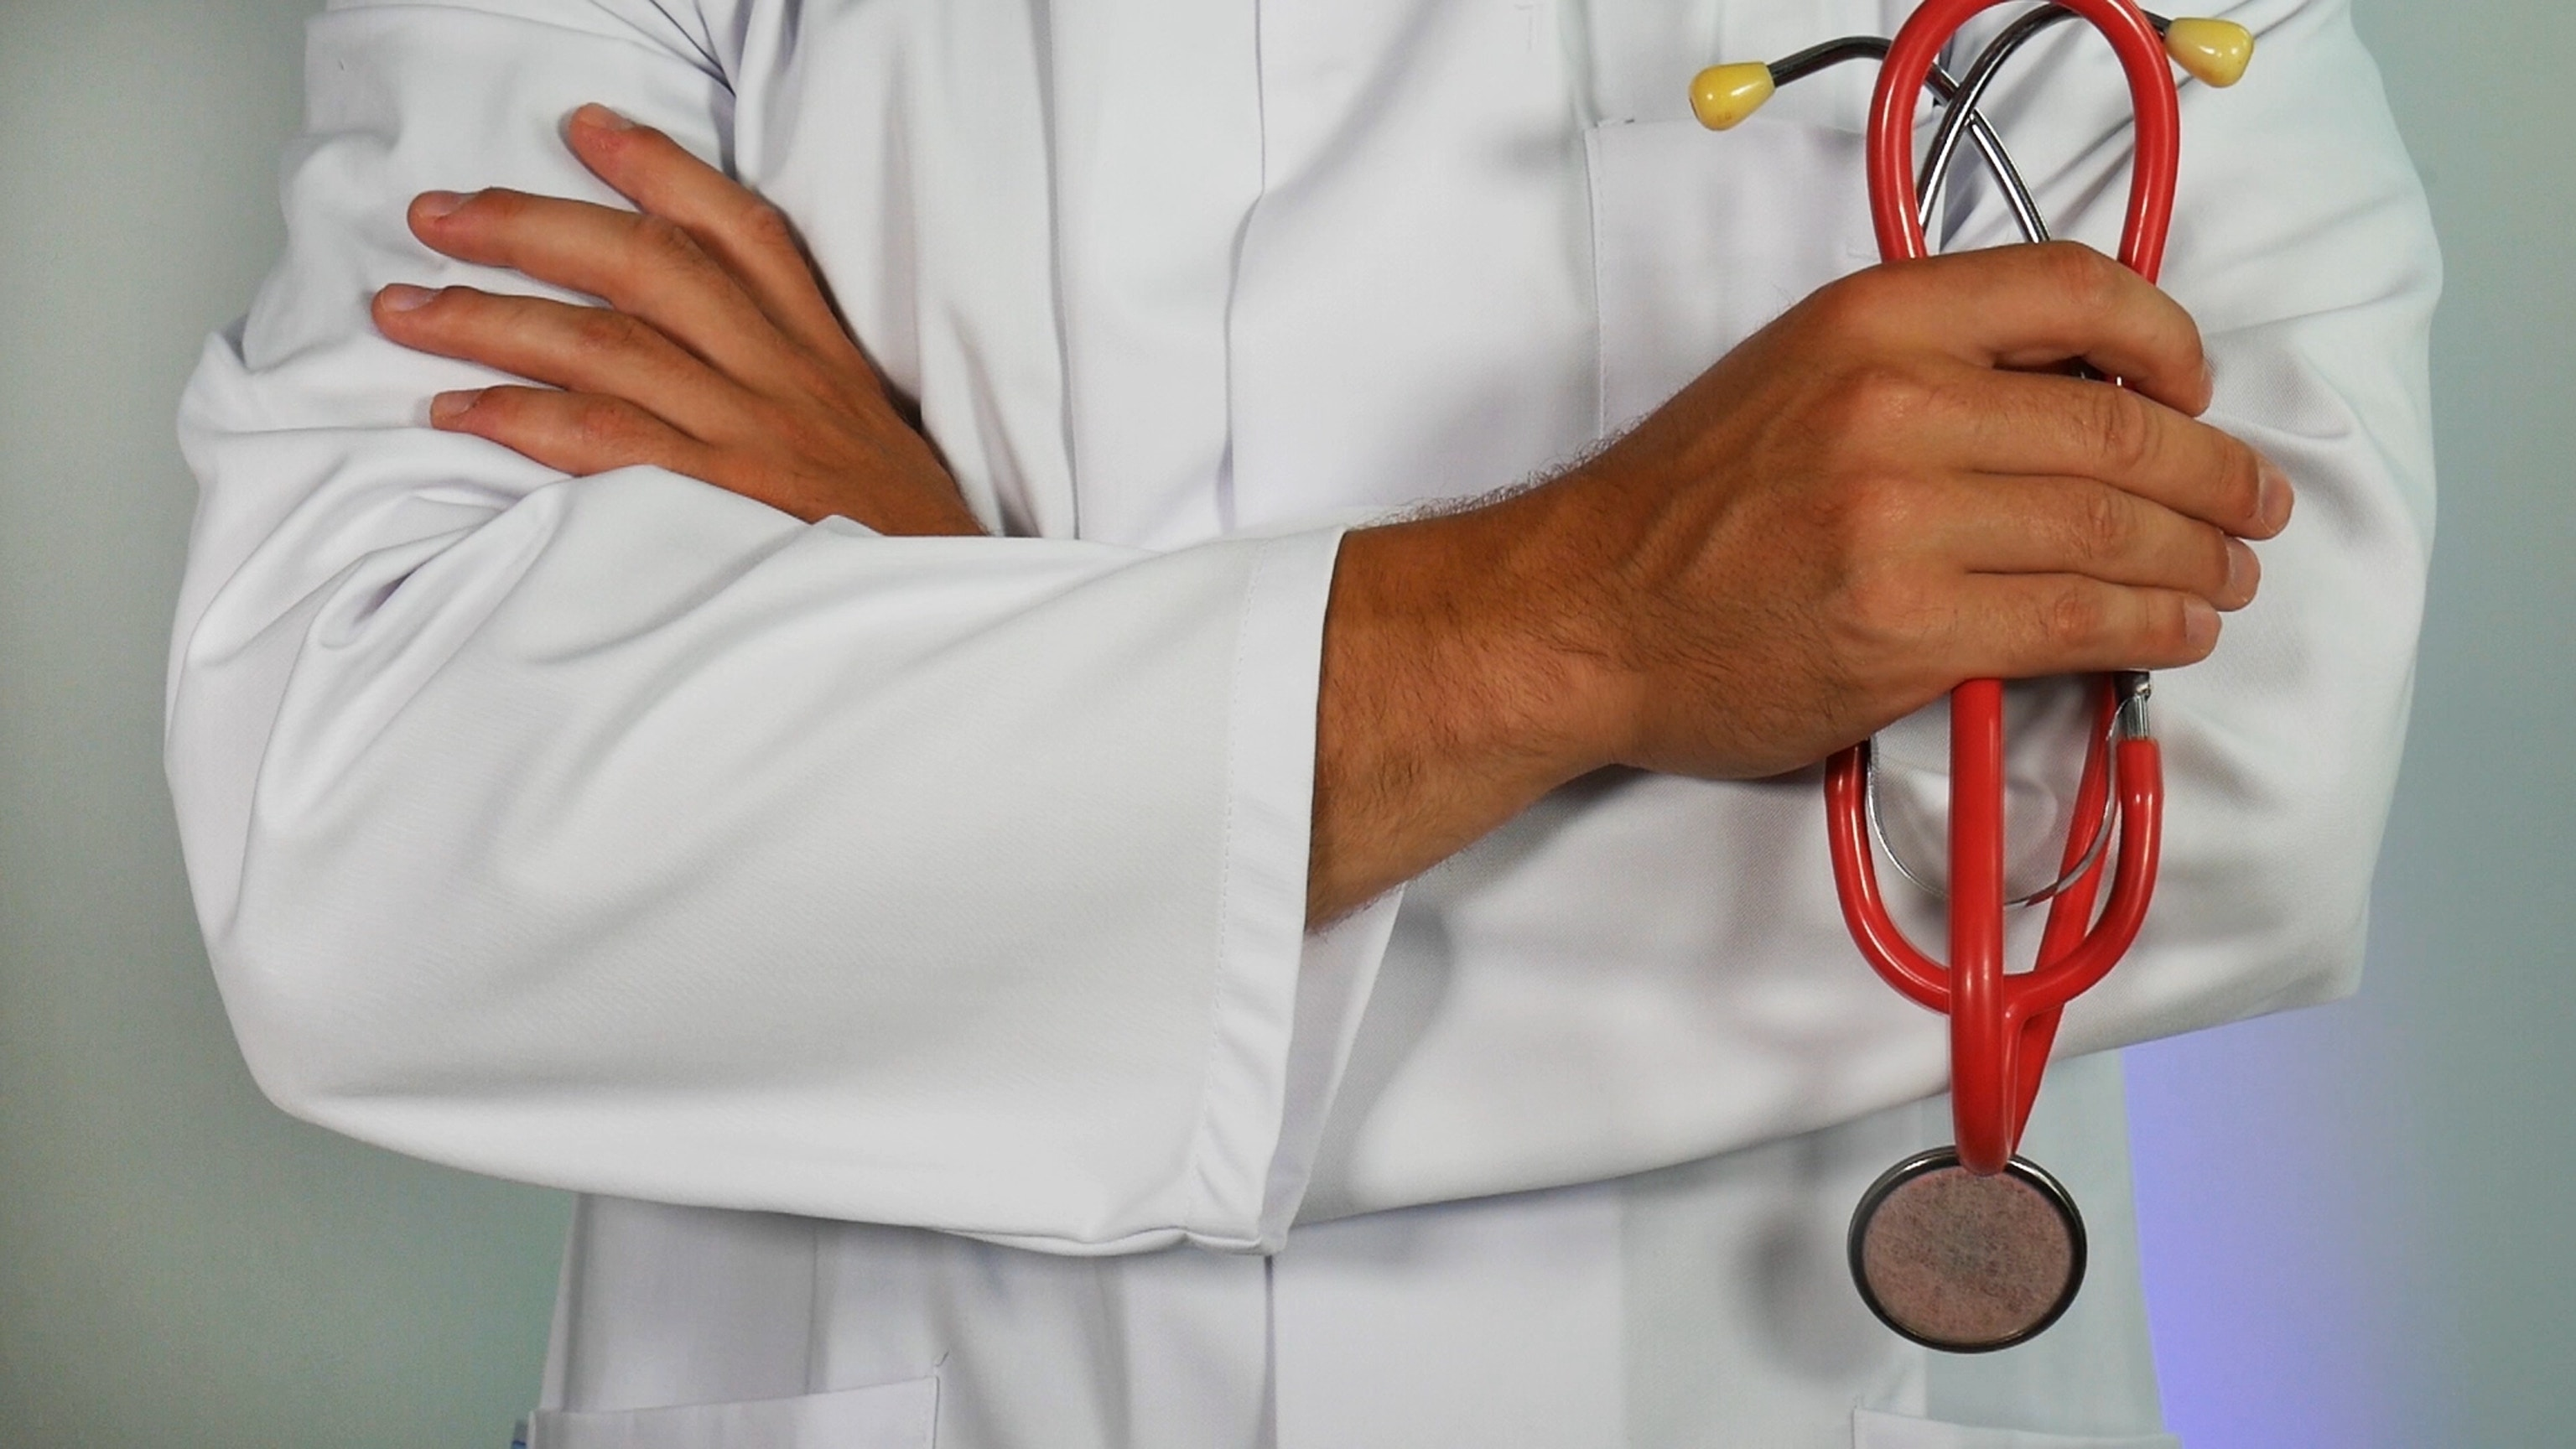 A person in medical attire with a red stethoscope in hand